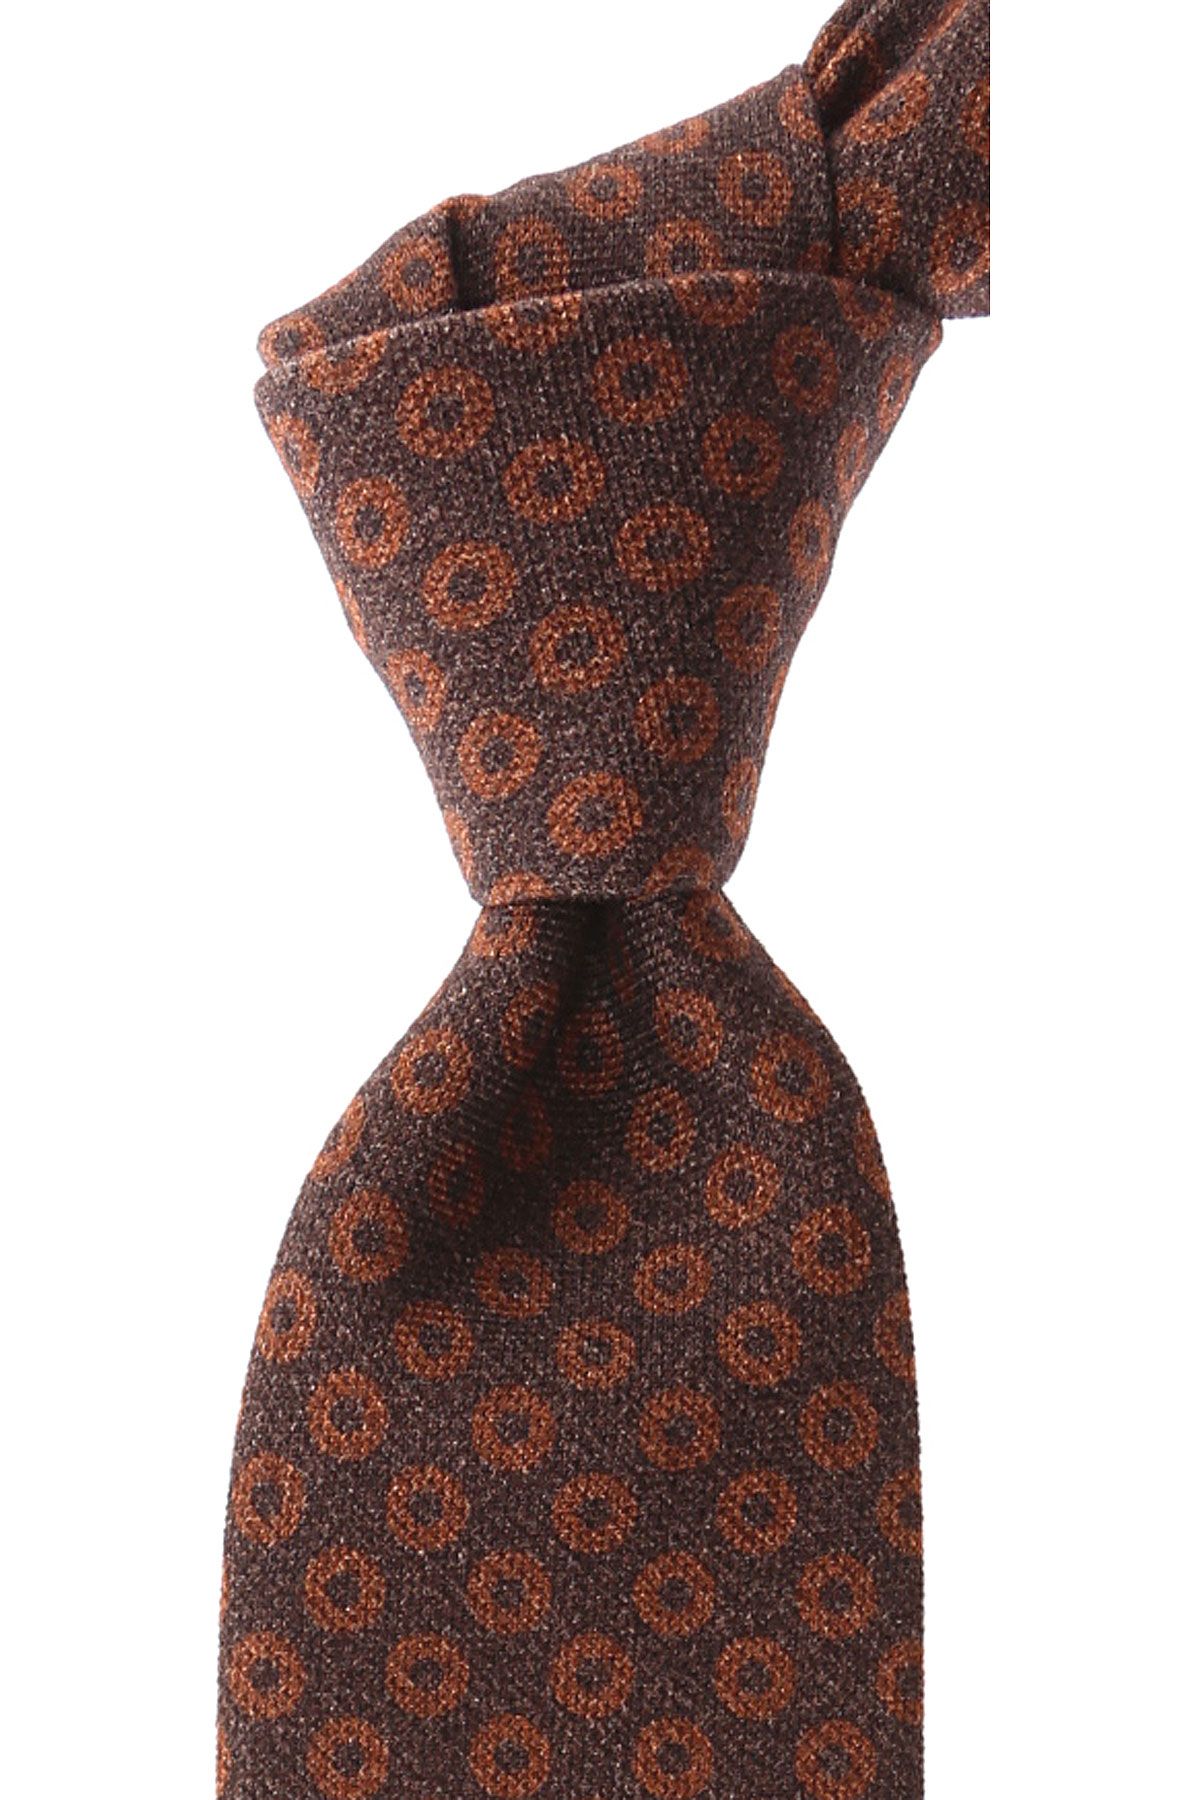 Ermenegildo_Zegna_Ties_On_Sale_Brown_Melange_Silk_2019